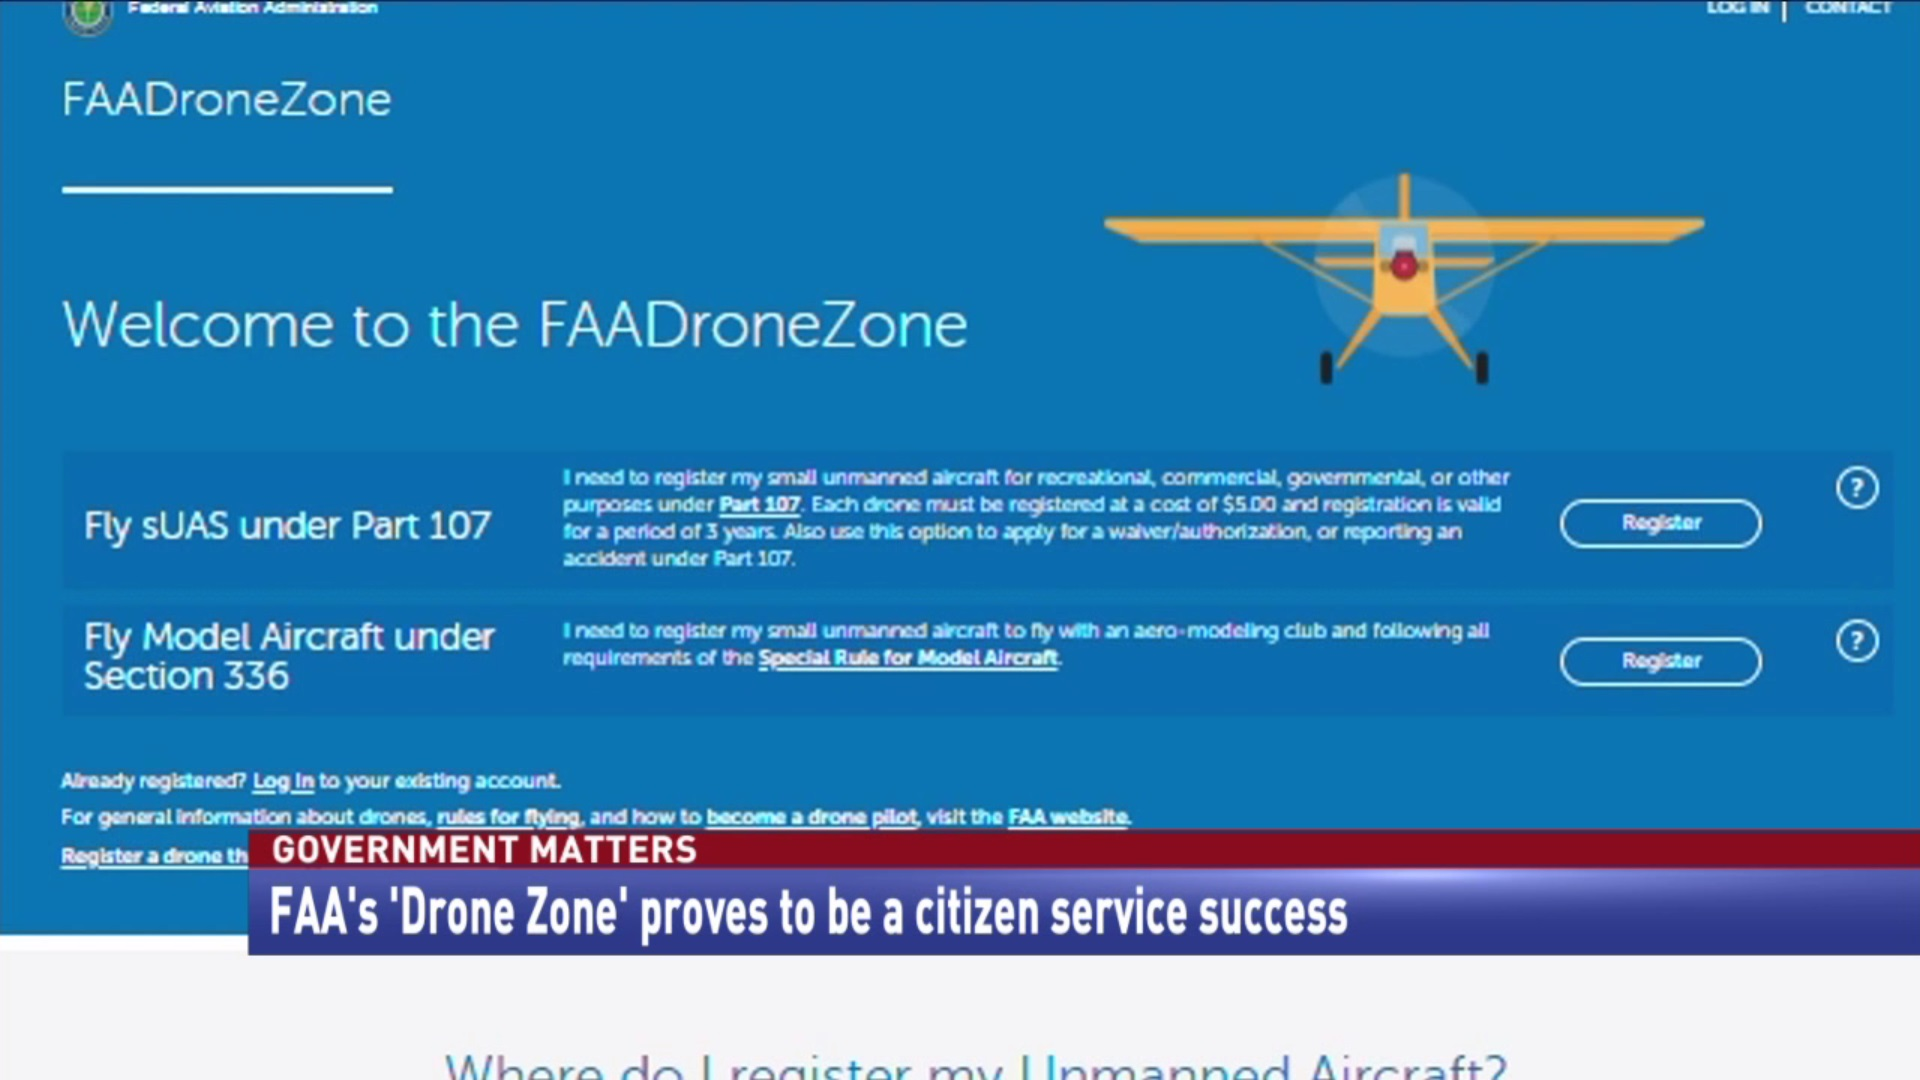 FAA's 'Drone Zone' proves to be a citizen service success